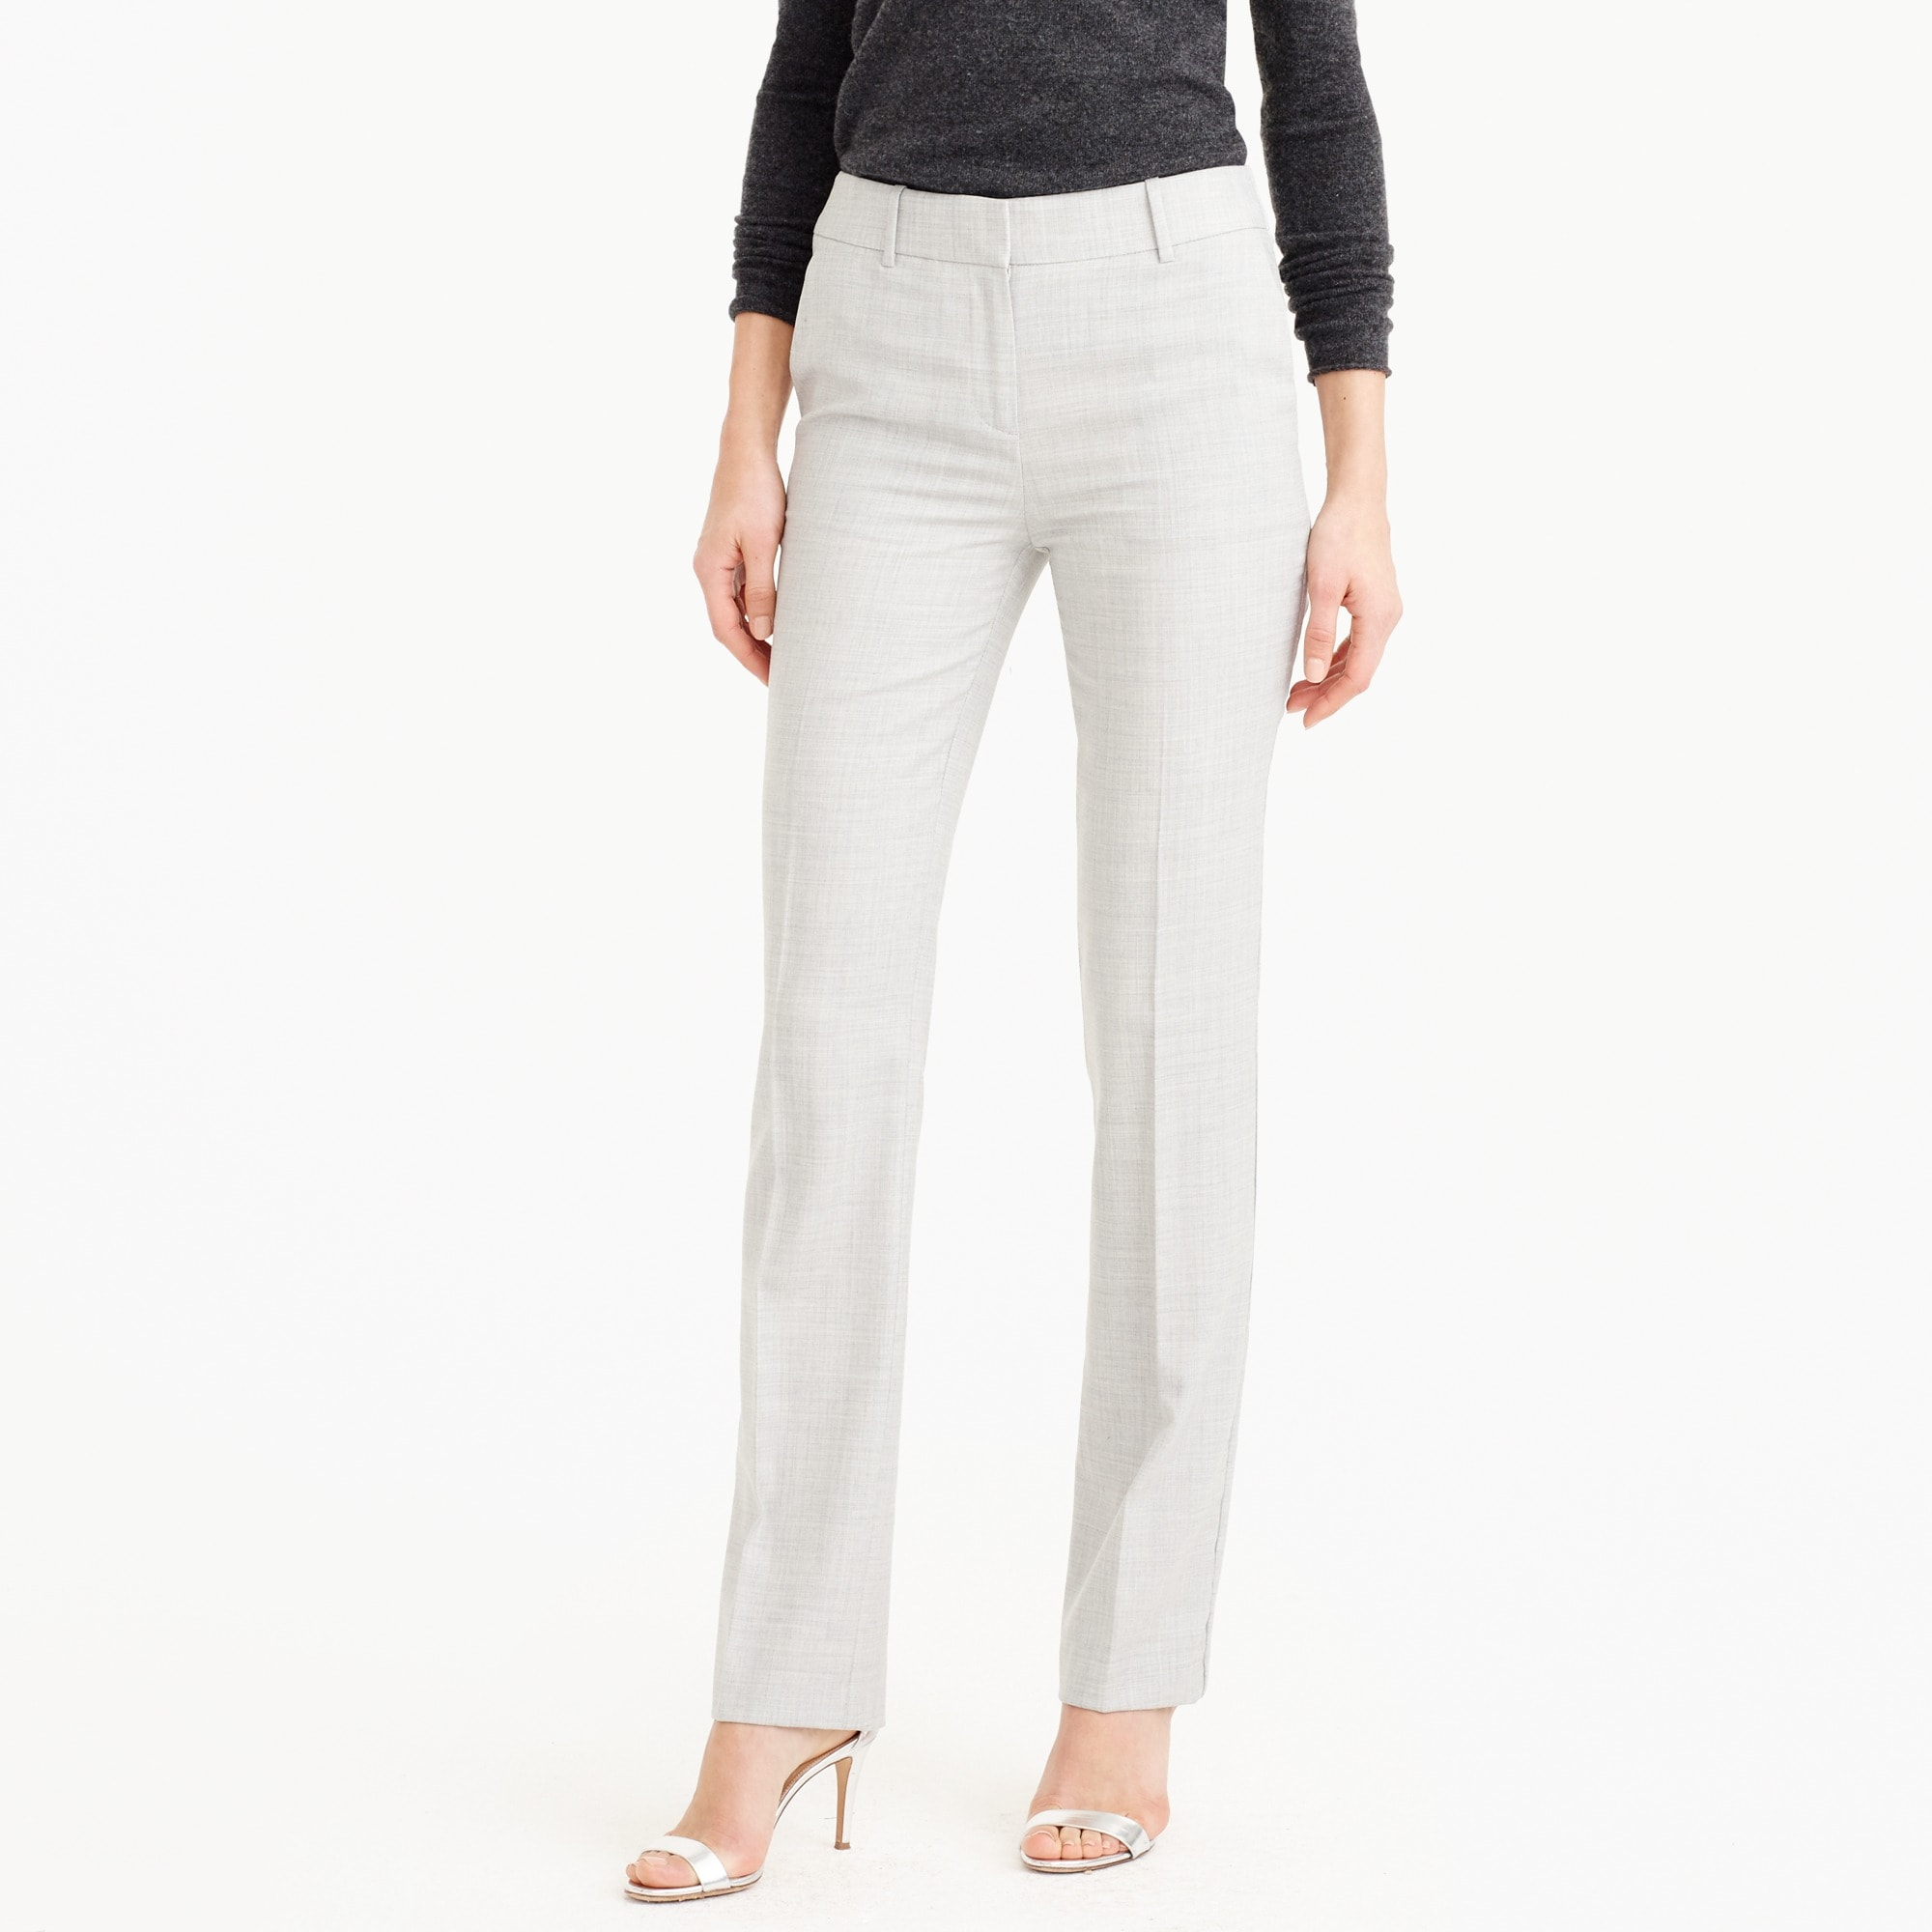 campbell trouser in super 120s wool : women's suit pants